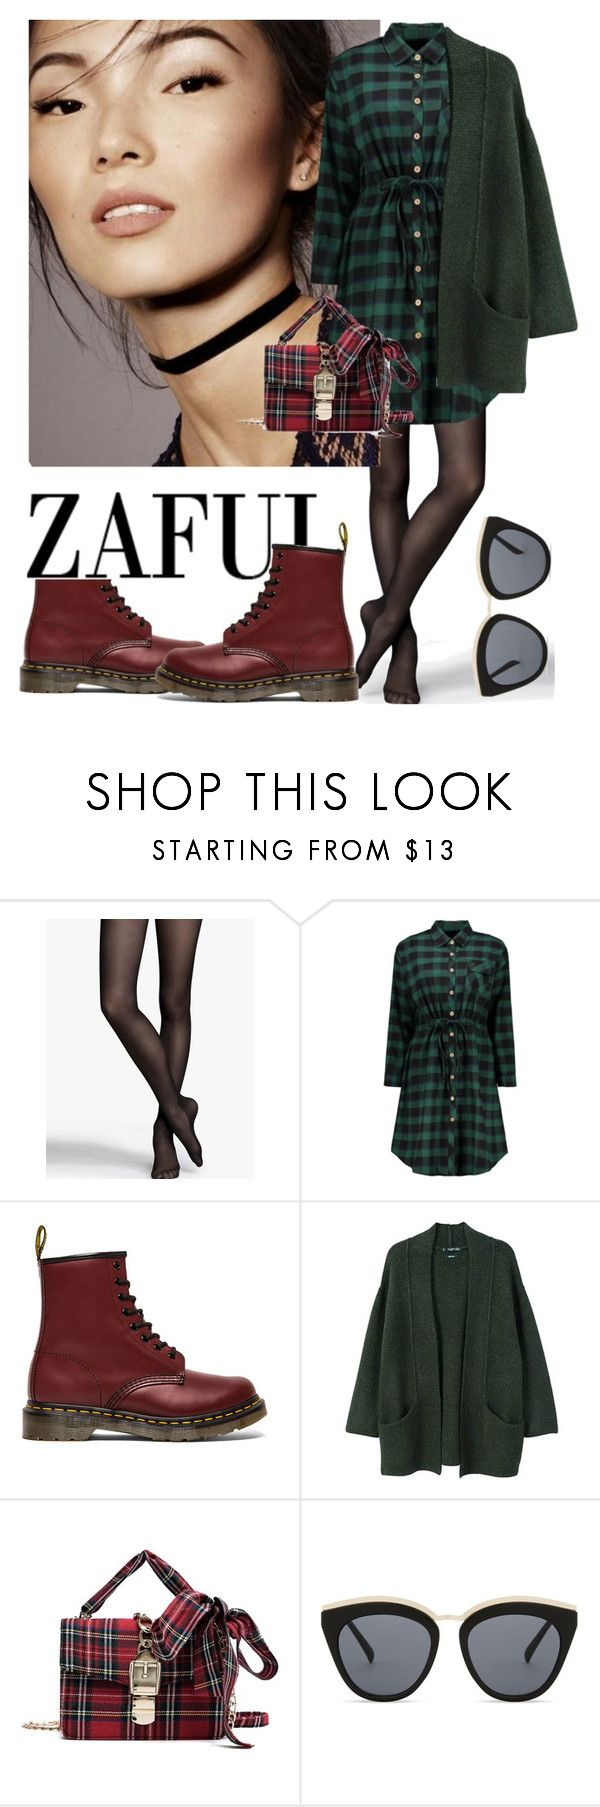 """""""Casual Autumn Outfit"""" by brownbounty ❤ liked on Polyvore featuring Express, Dr. Martens, MANGO and Le Specs"""